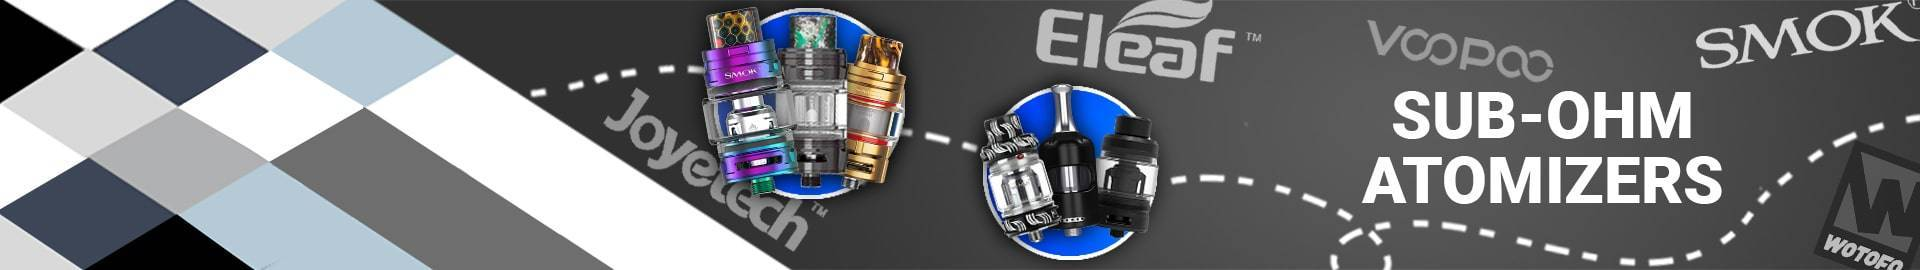 Sub-ohm atomizers  | Royalsmoke.co.uk